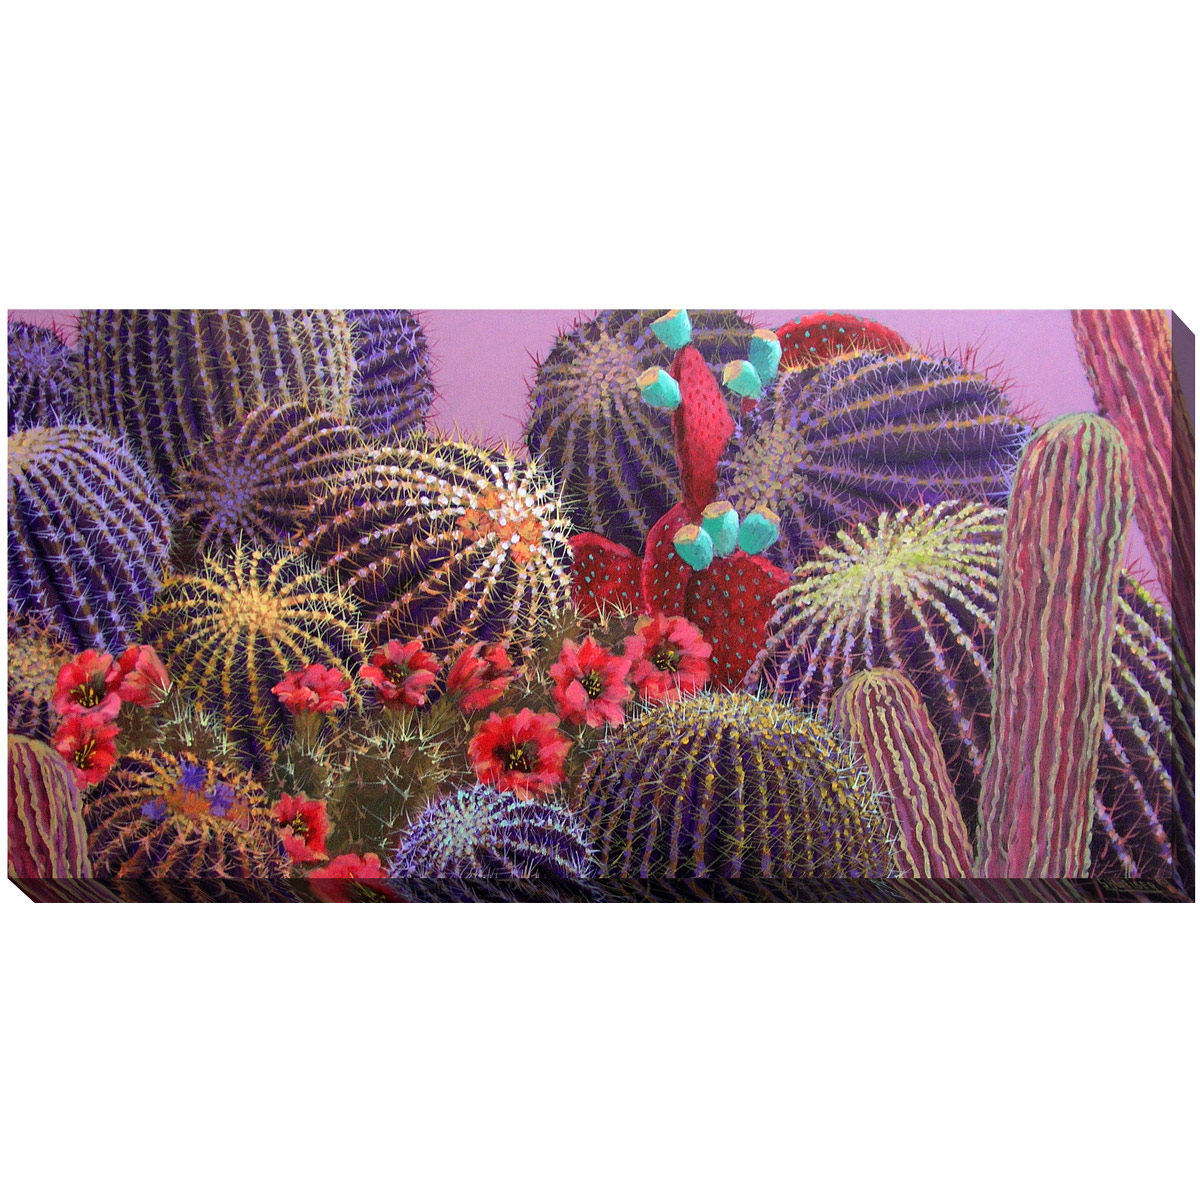 Southwest Botanicals VIII Canvas Art